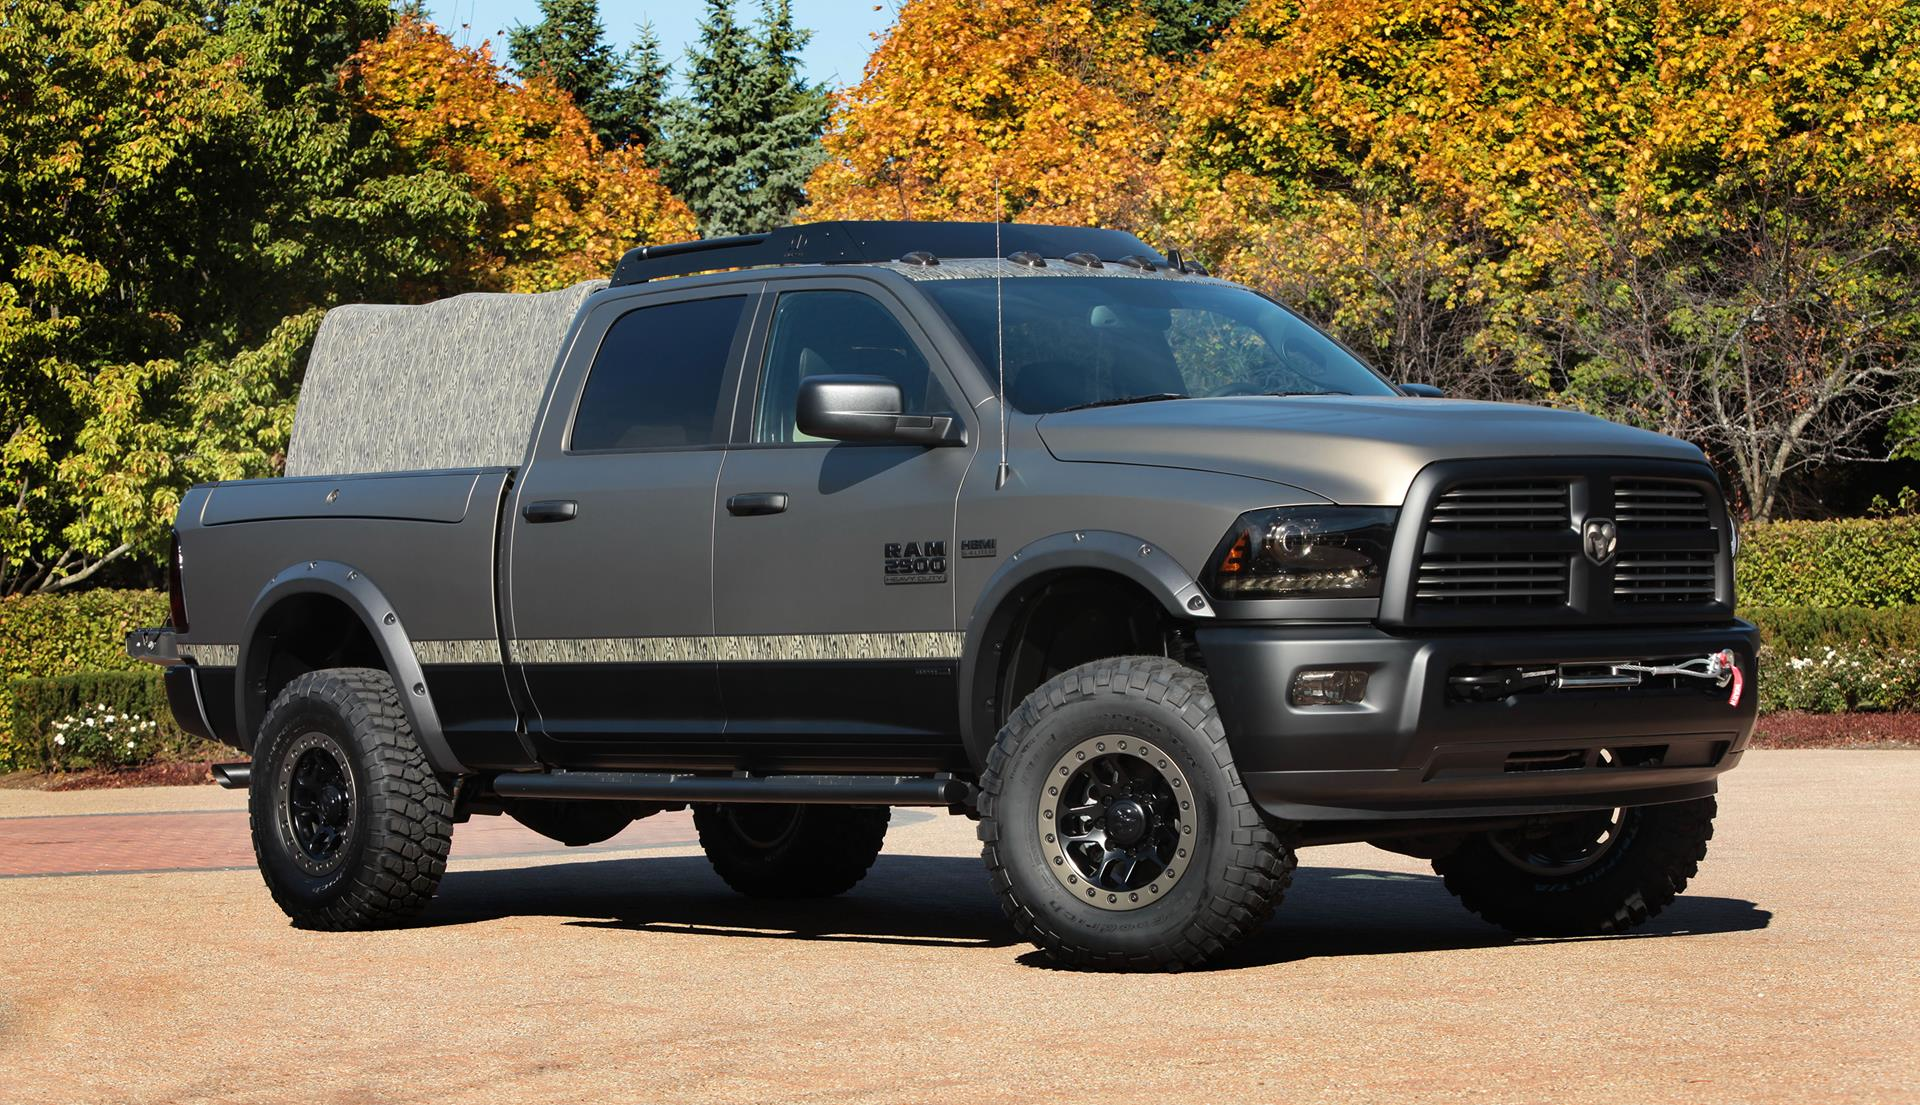 2014 Ram 2500 Outdoorsman News and Information, Research, and Pricing